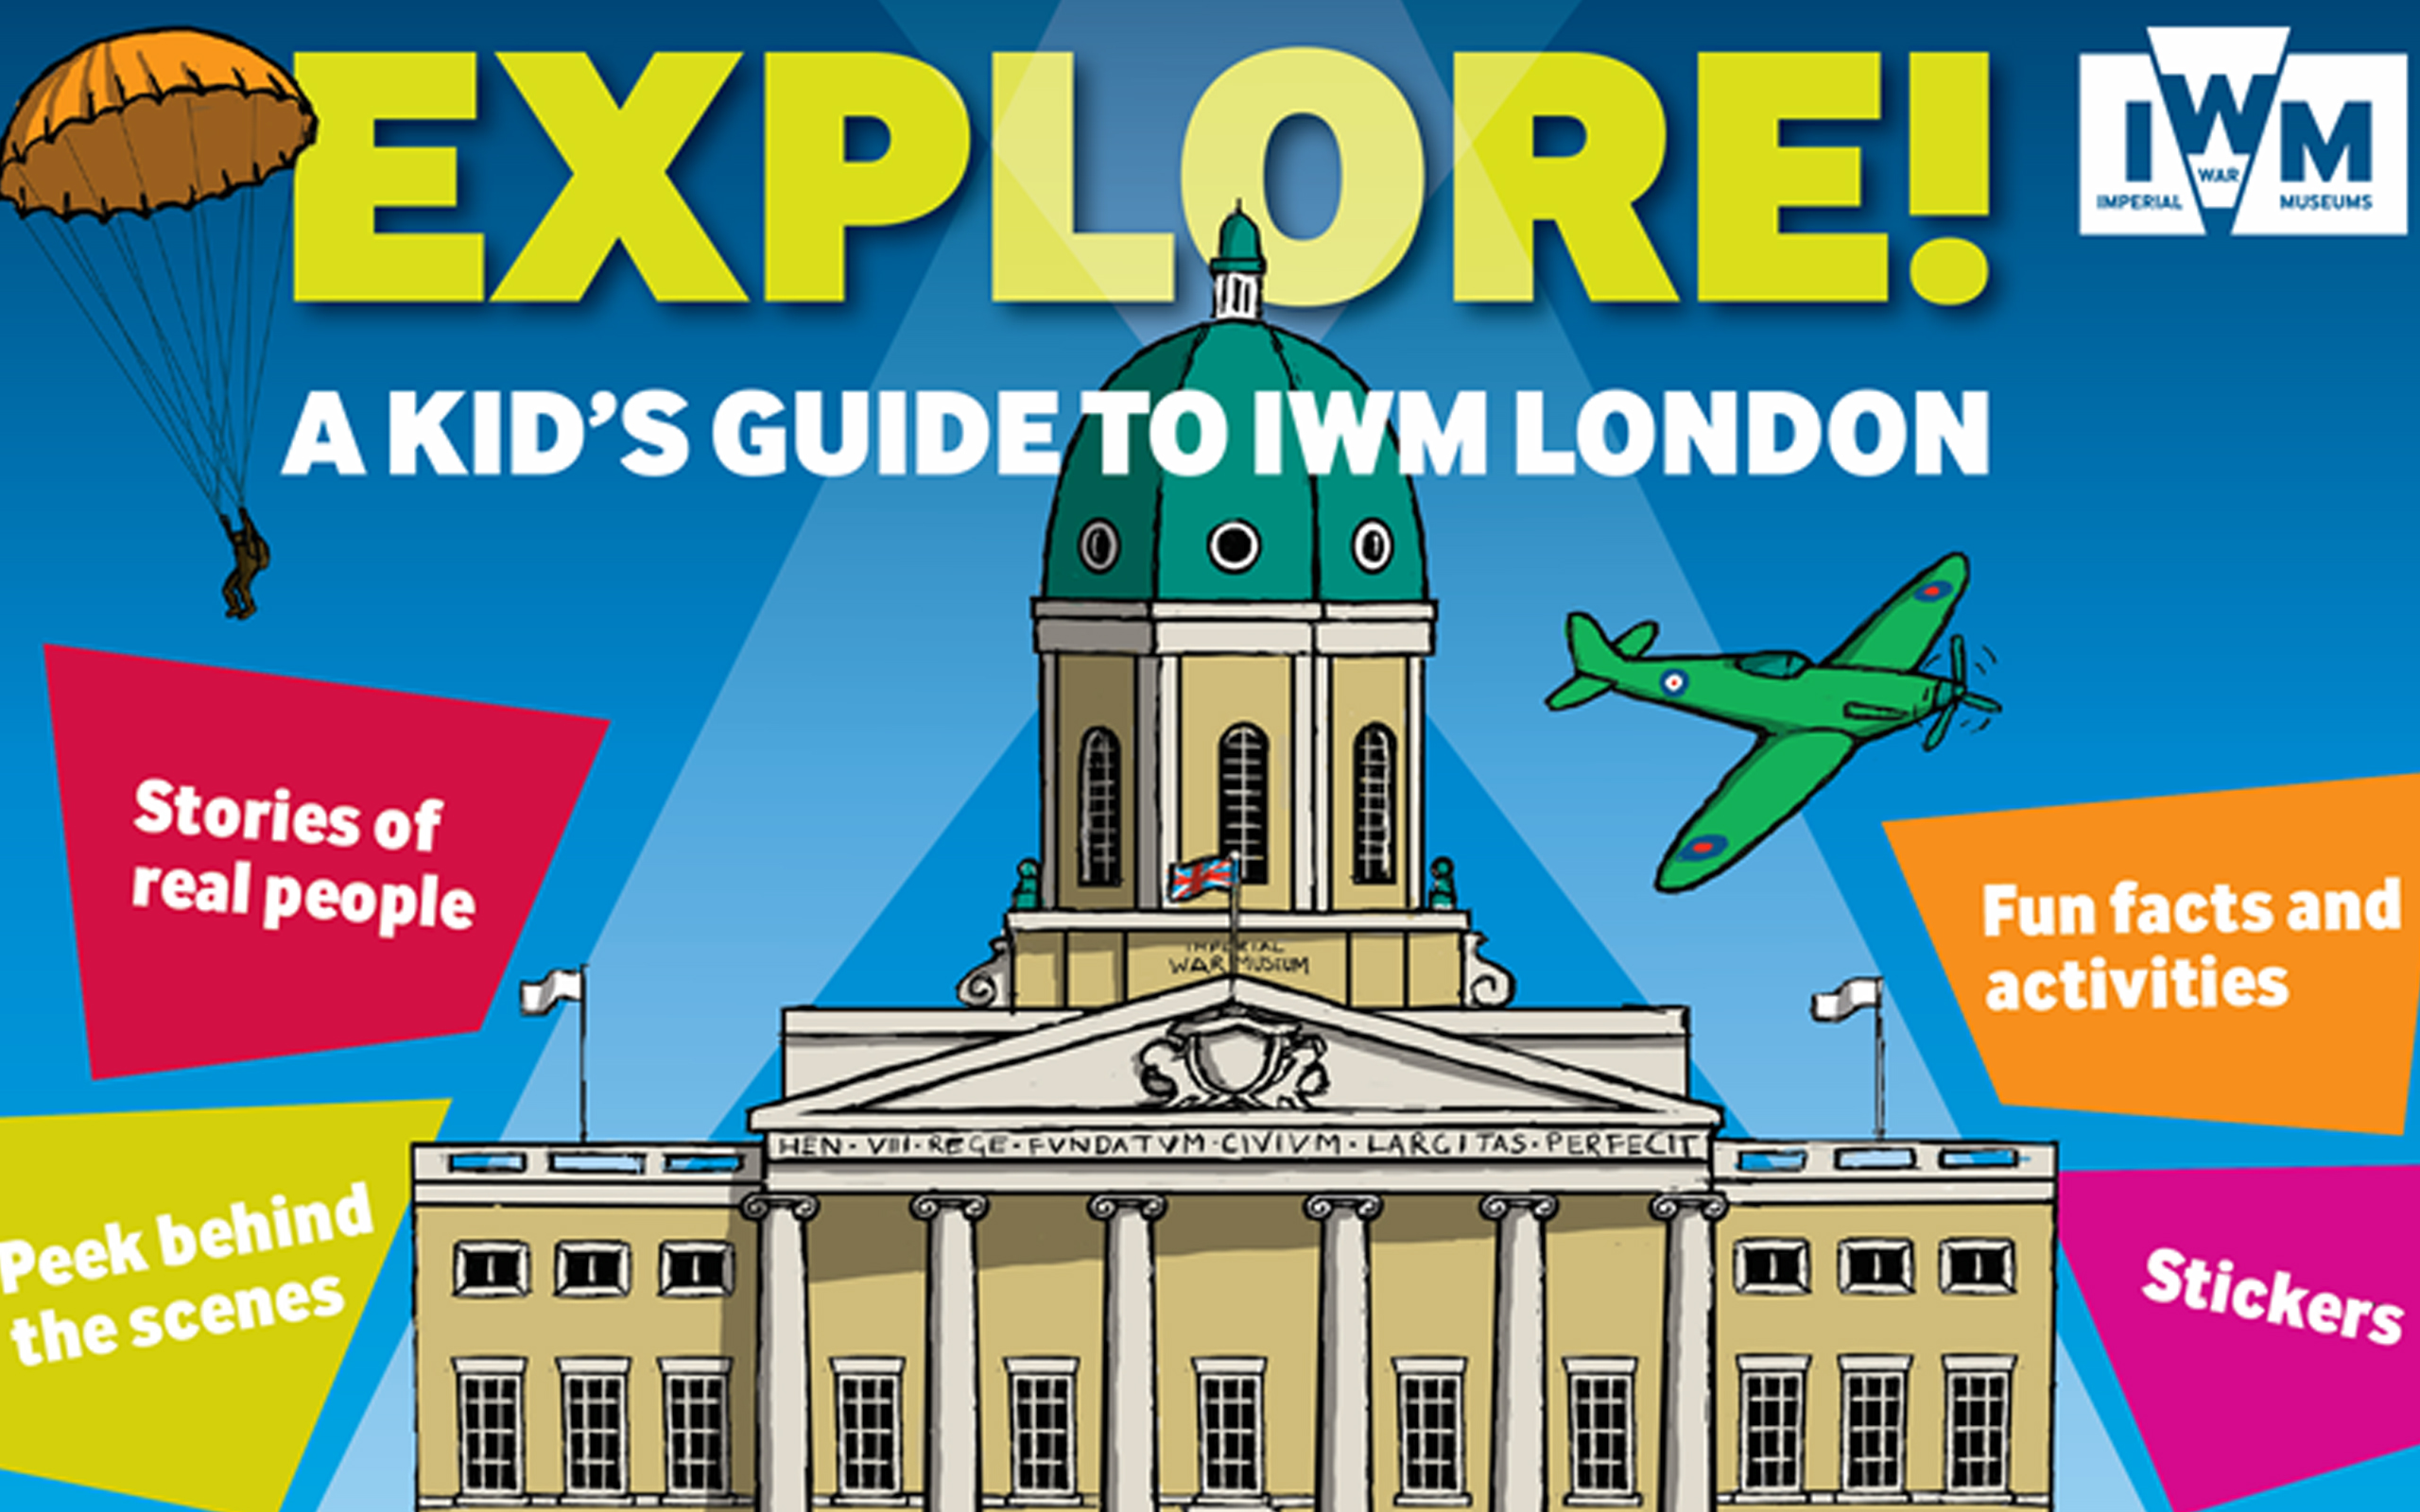 Front cover of Explore! A kid's guide to IWM London